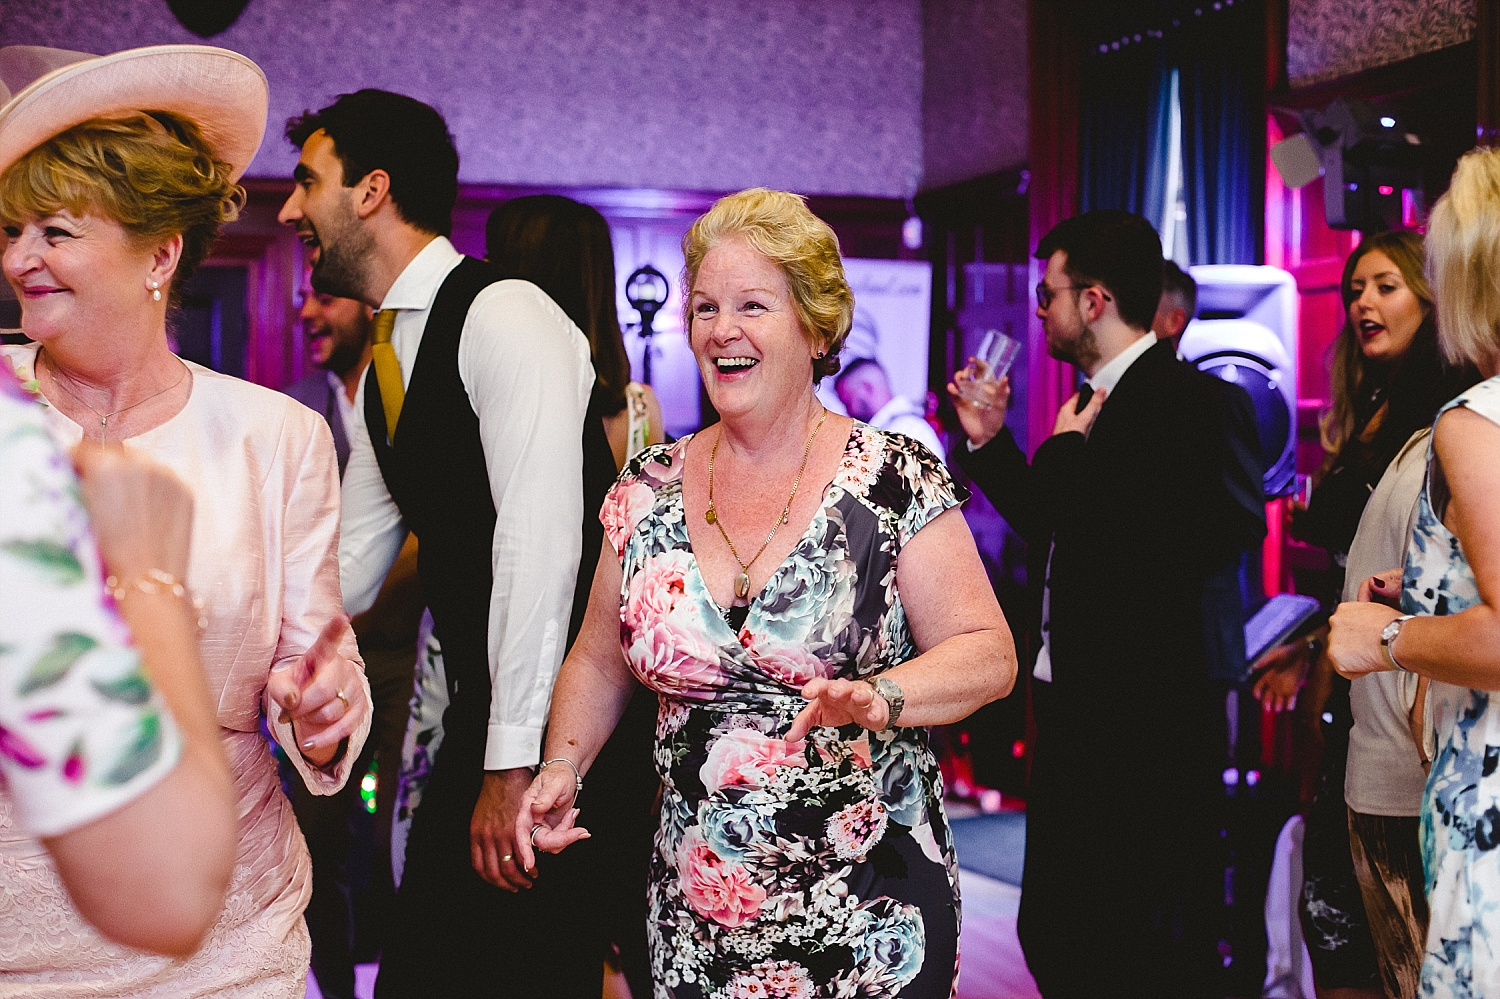 Langtons-House-Essex-Wedding-Photographer_0080.jpg